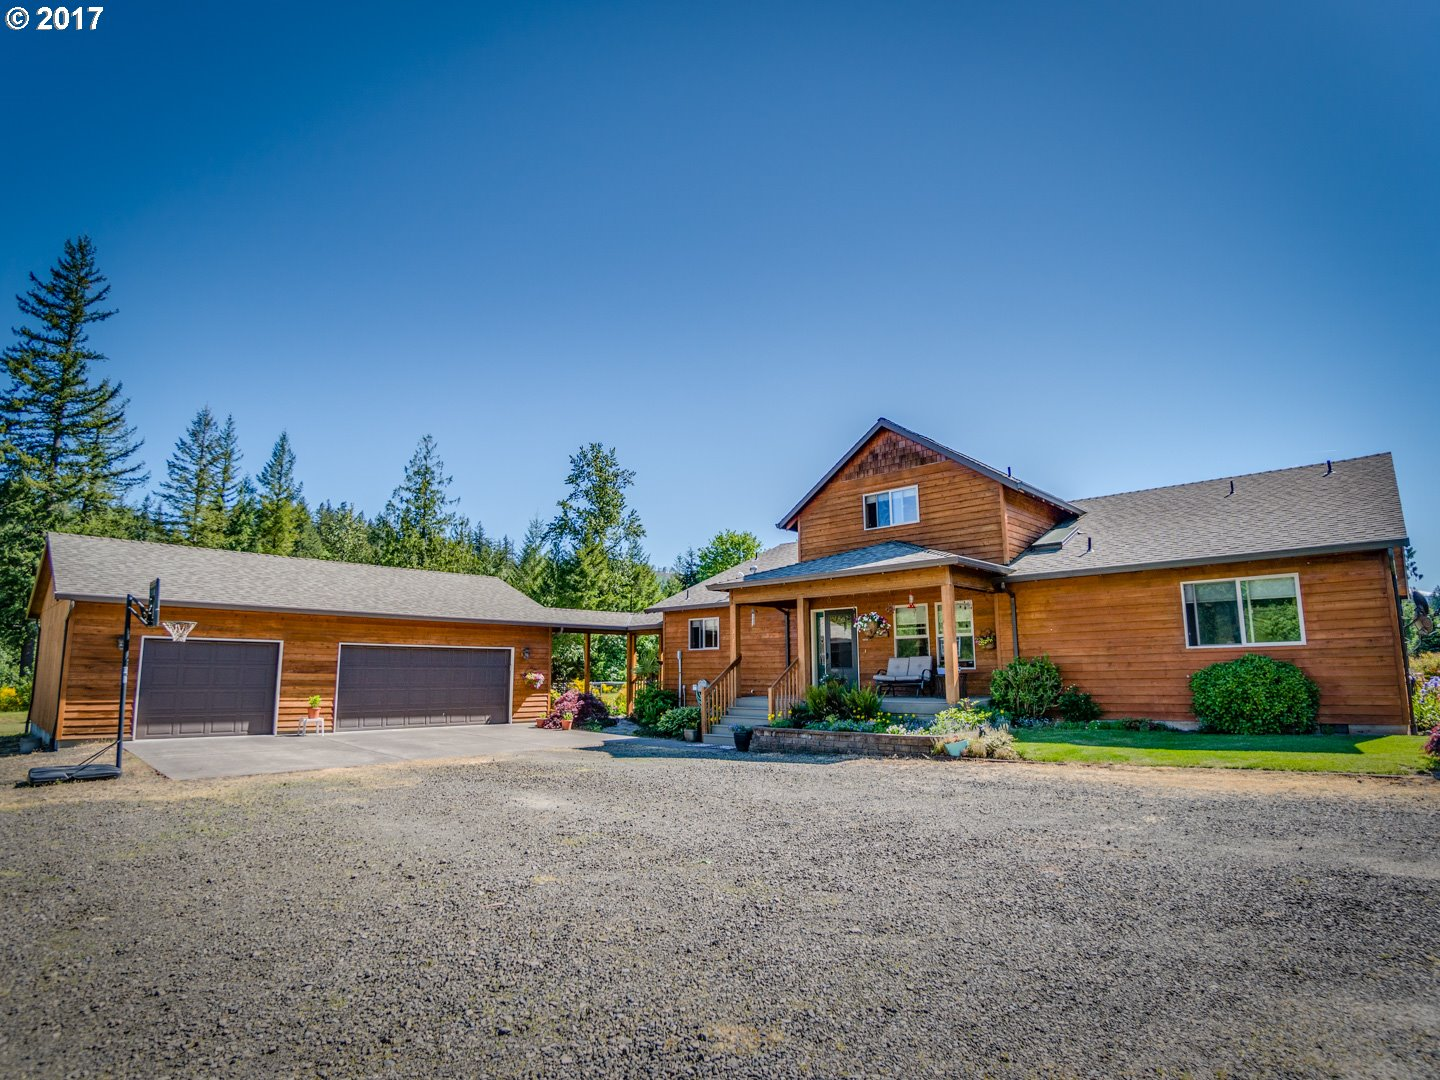 53905 E Highway 26, Sandy, OR 97055